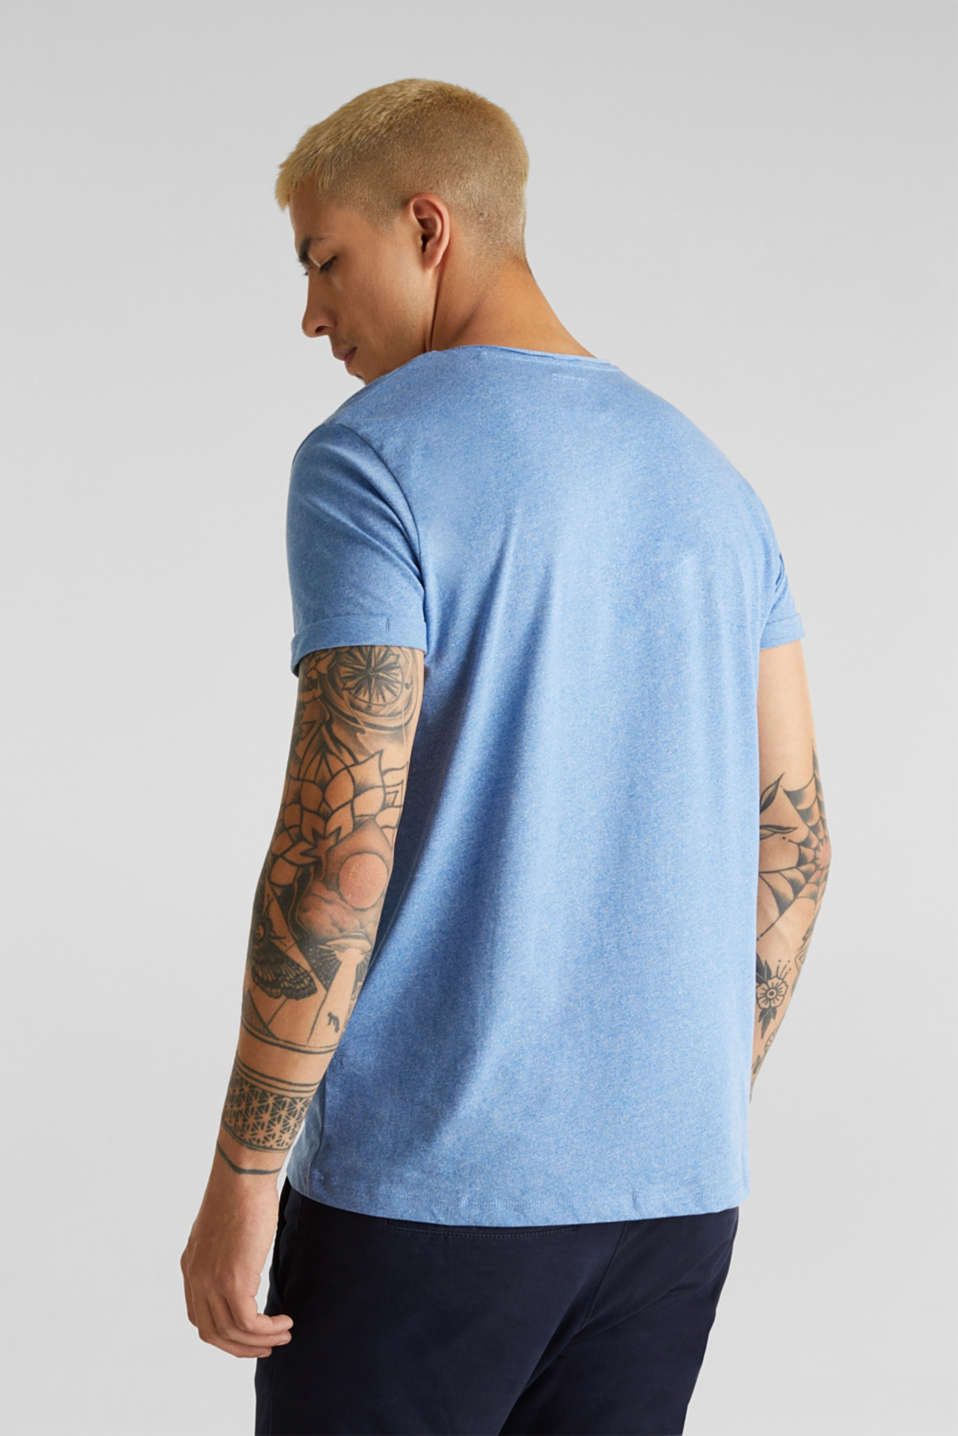 Jersey T-shirt in a casual look, BLUE 5, detail image number 3